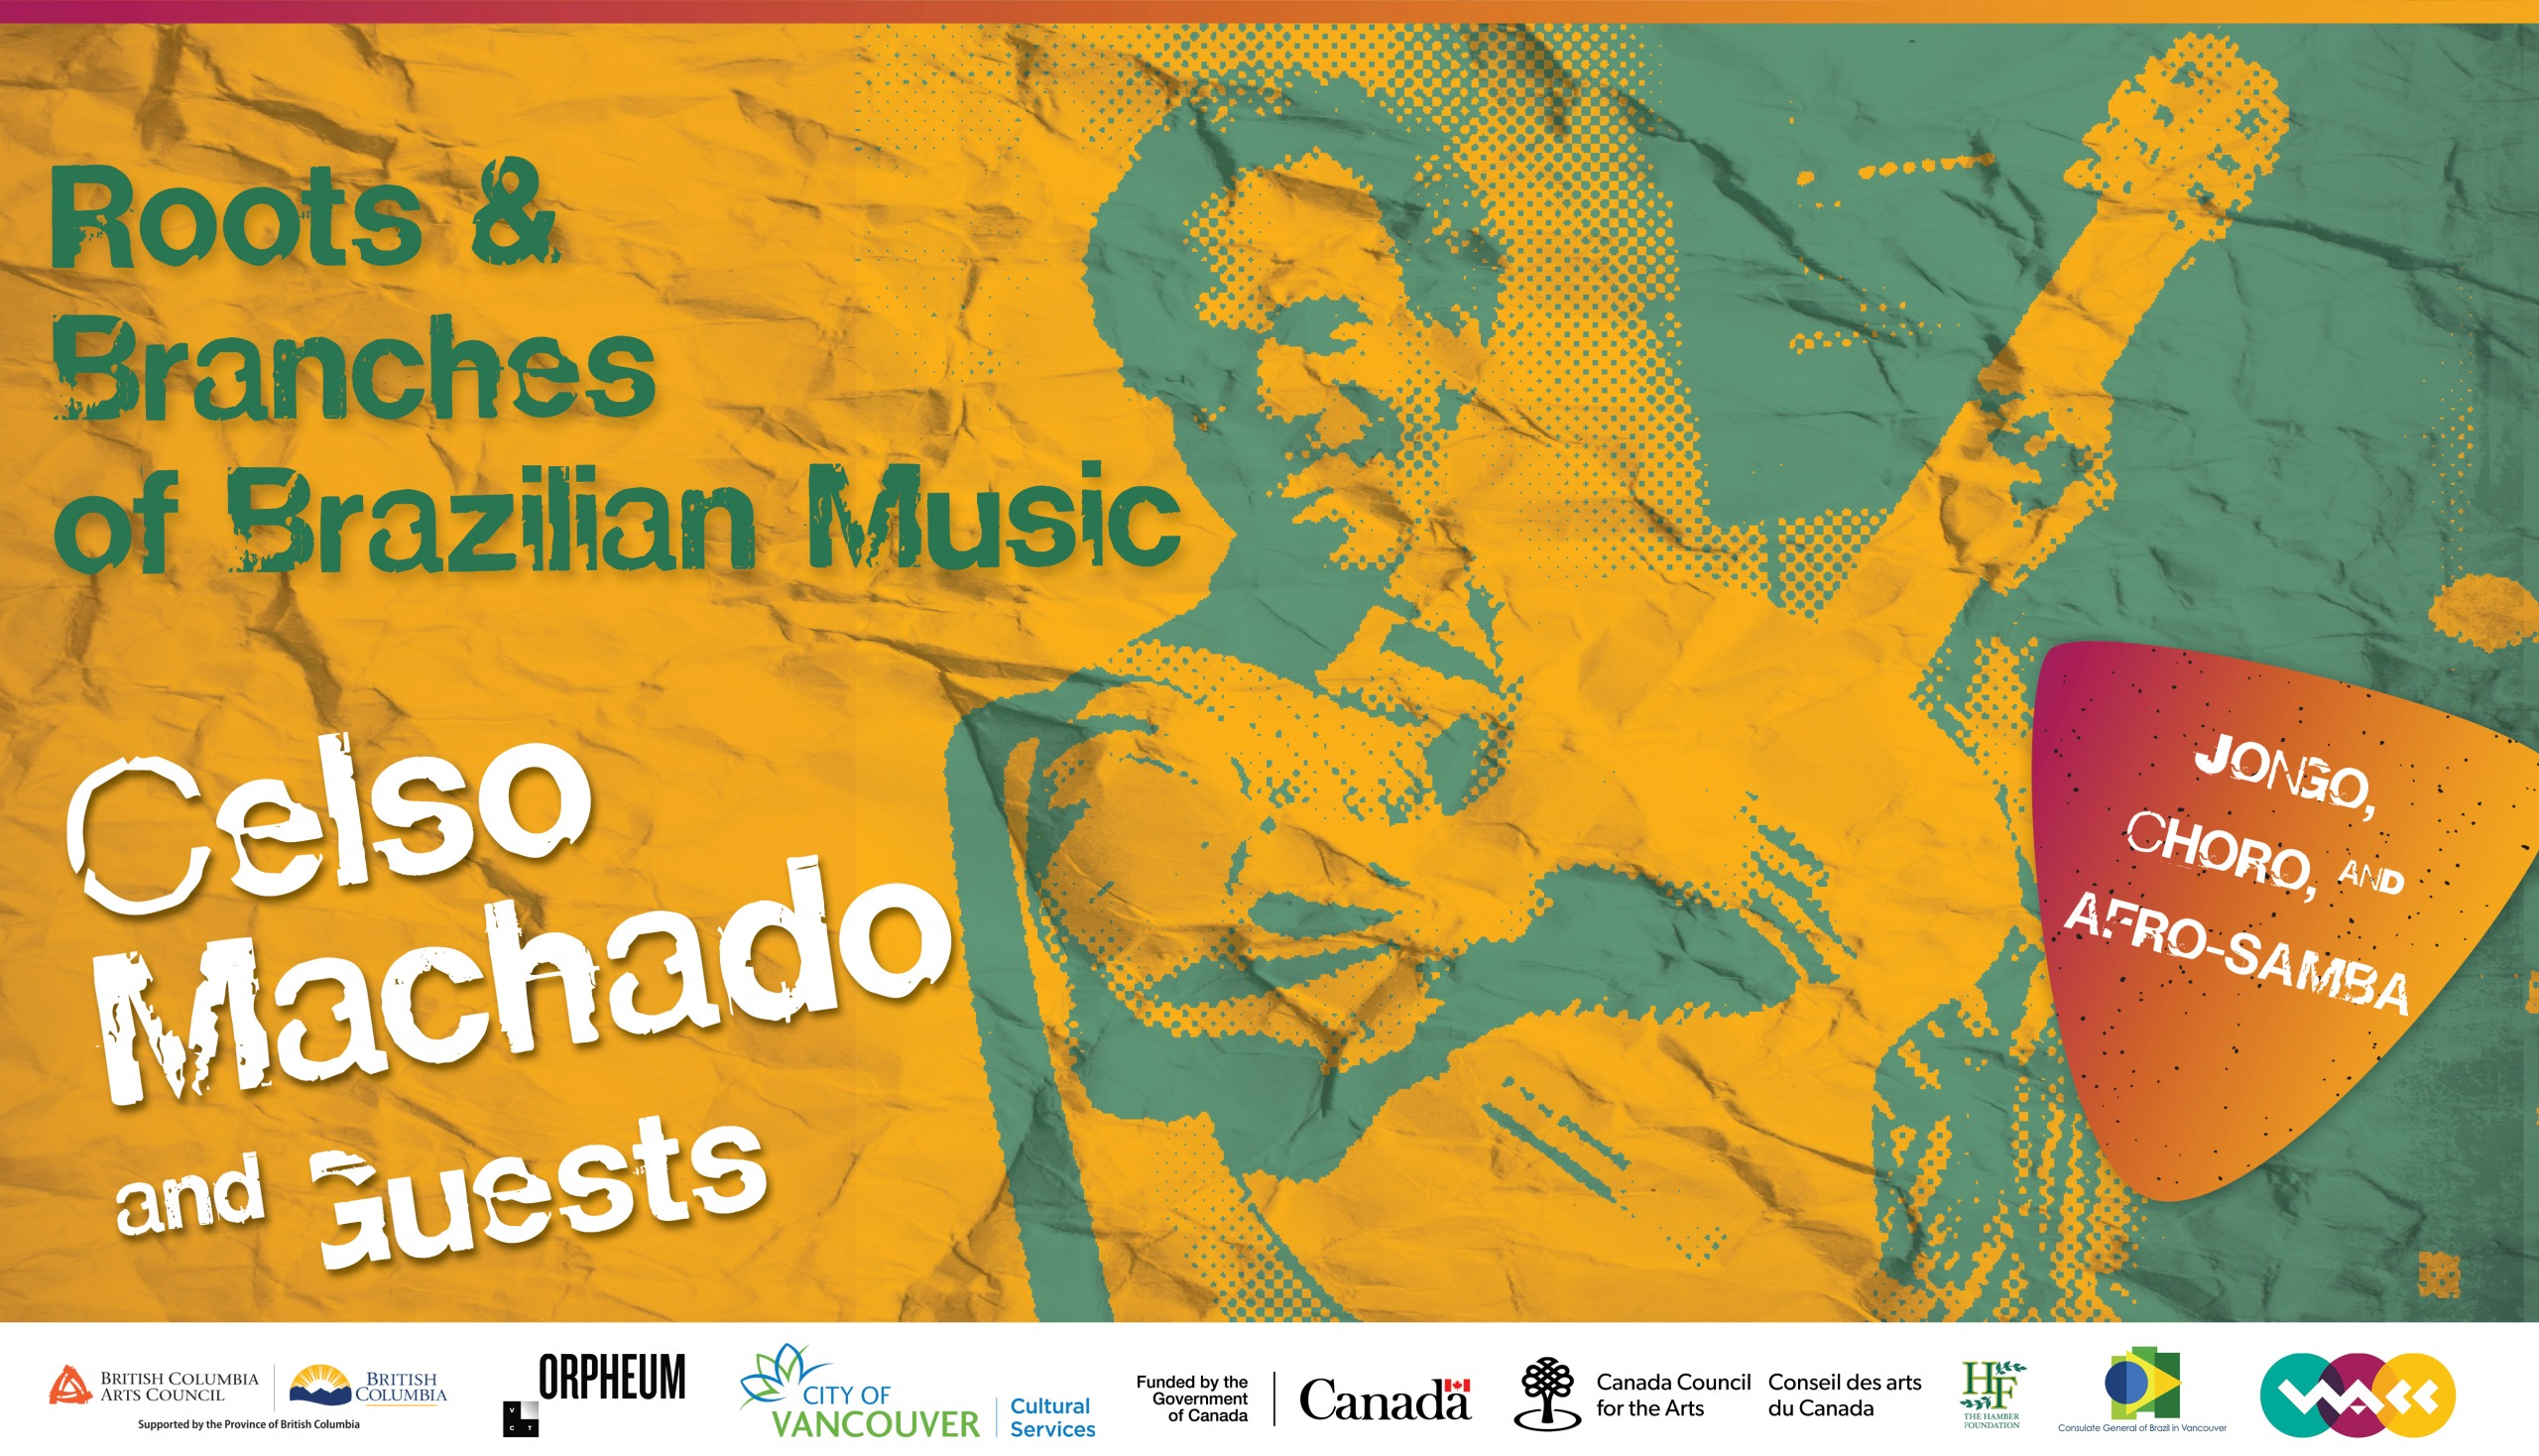 Celso Machado & Guests